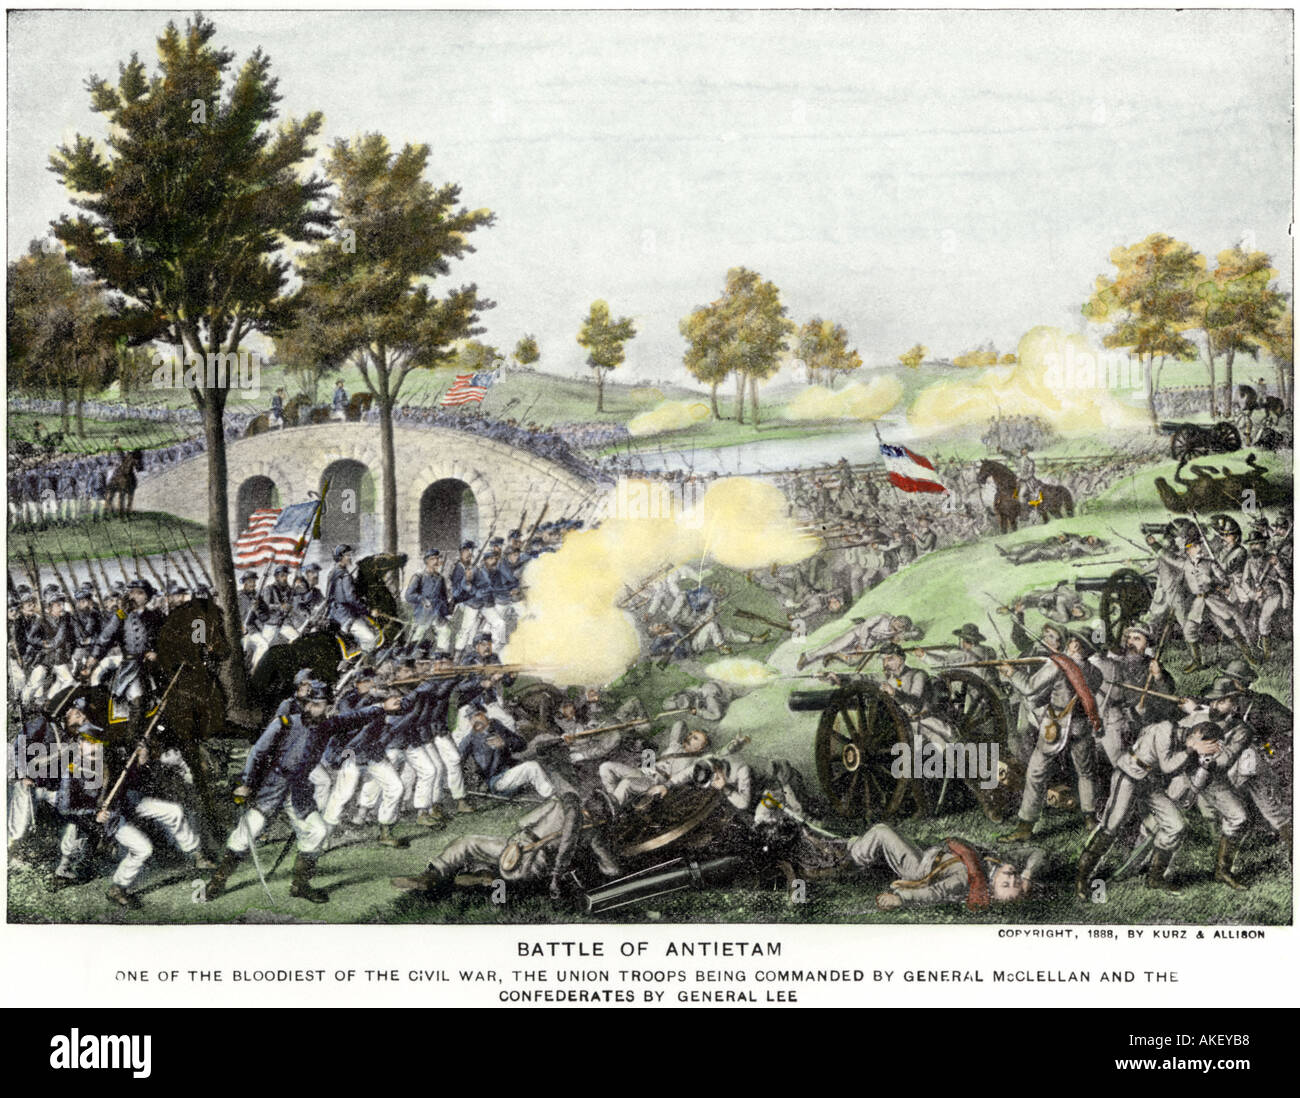 the battle of antietam essay The battle of antietam / æ n ˈ t iː t əm /, also known as the battle of sharpsburg, particularly in the southern united states, was a battle of the american civil war, fought on september 17, 1862, between confederate general robert e lee's army of northern virginia and union general george b mcclellan's army of the potomac, near.